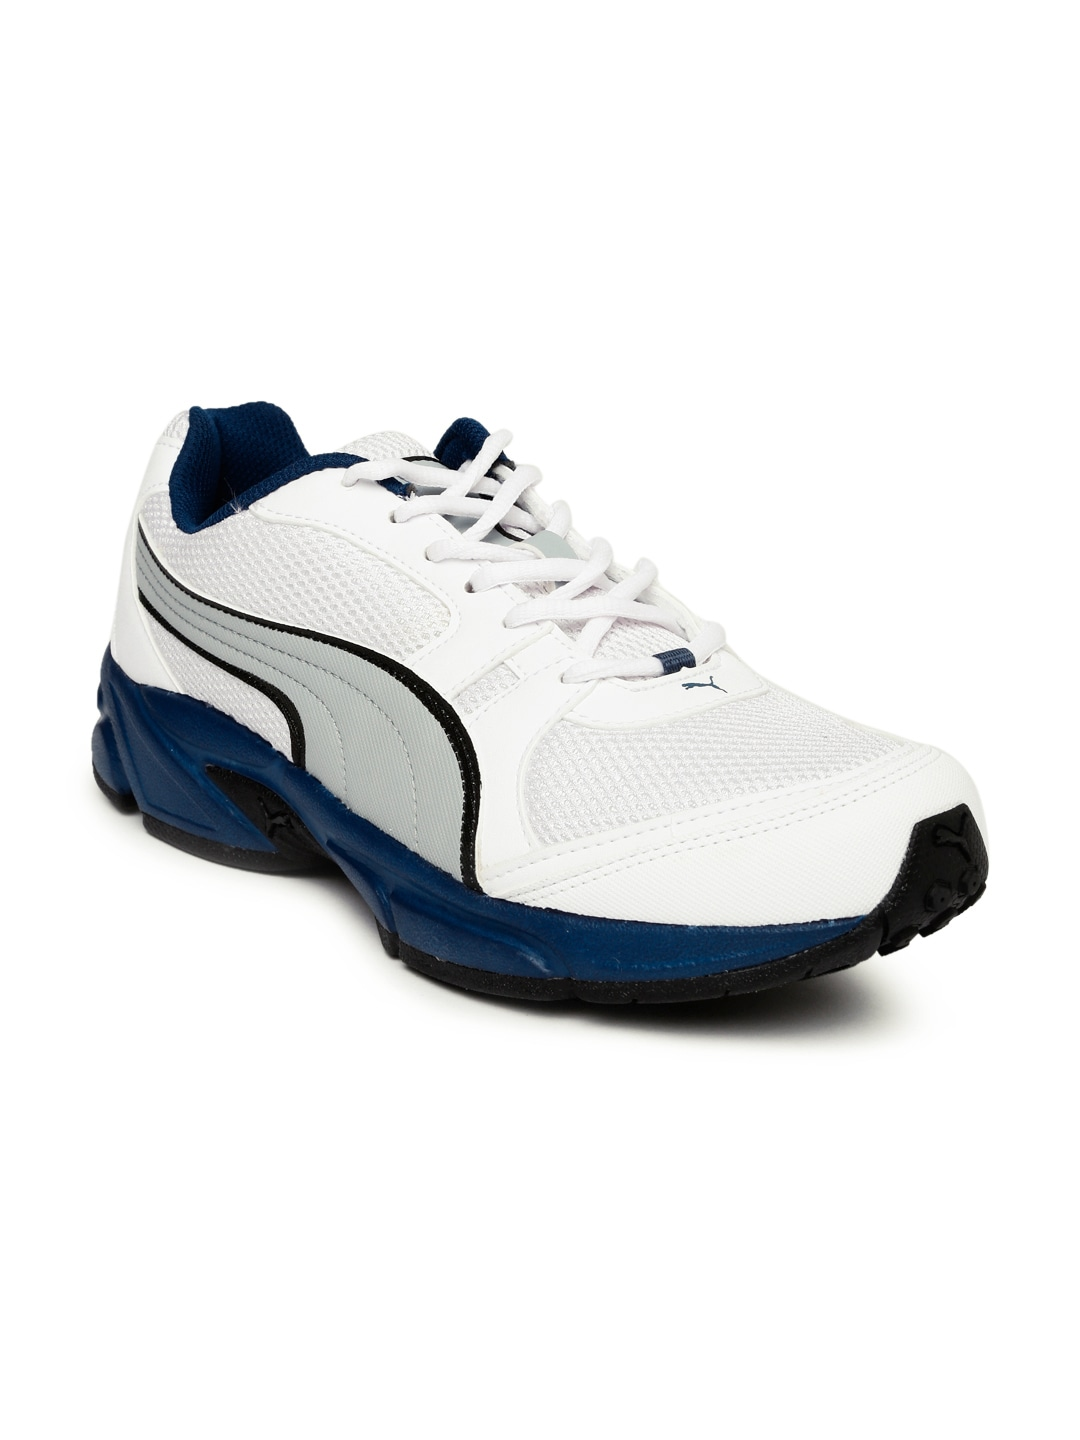 36d9998a797ddc puma tennis shoes mens cheap   OFF68% Discounted